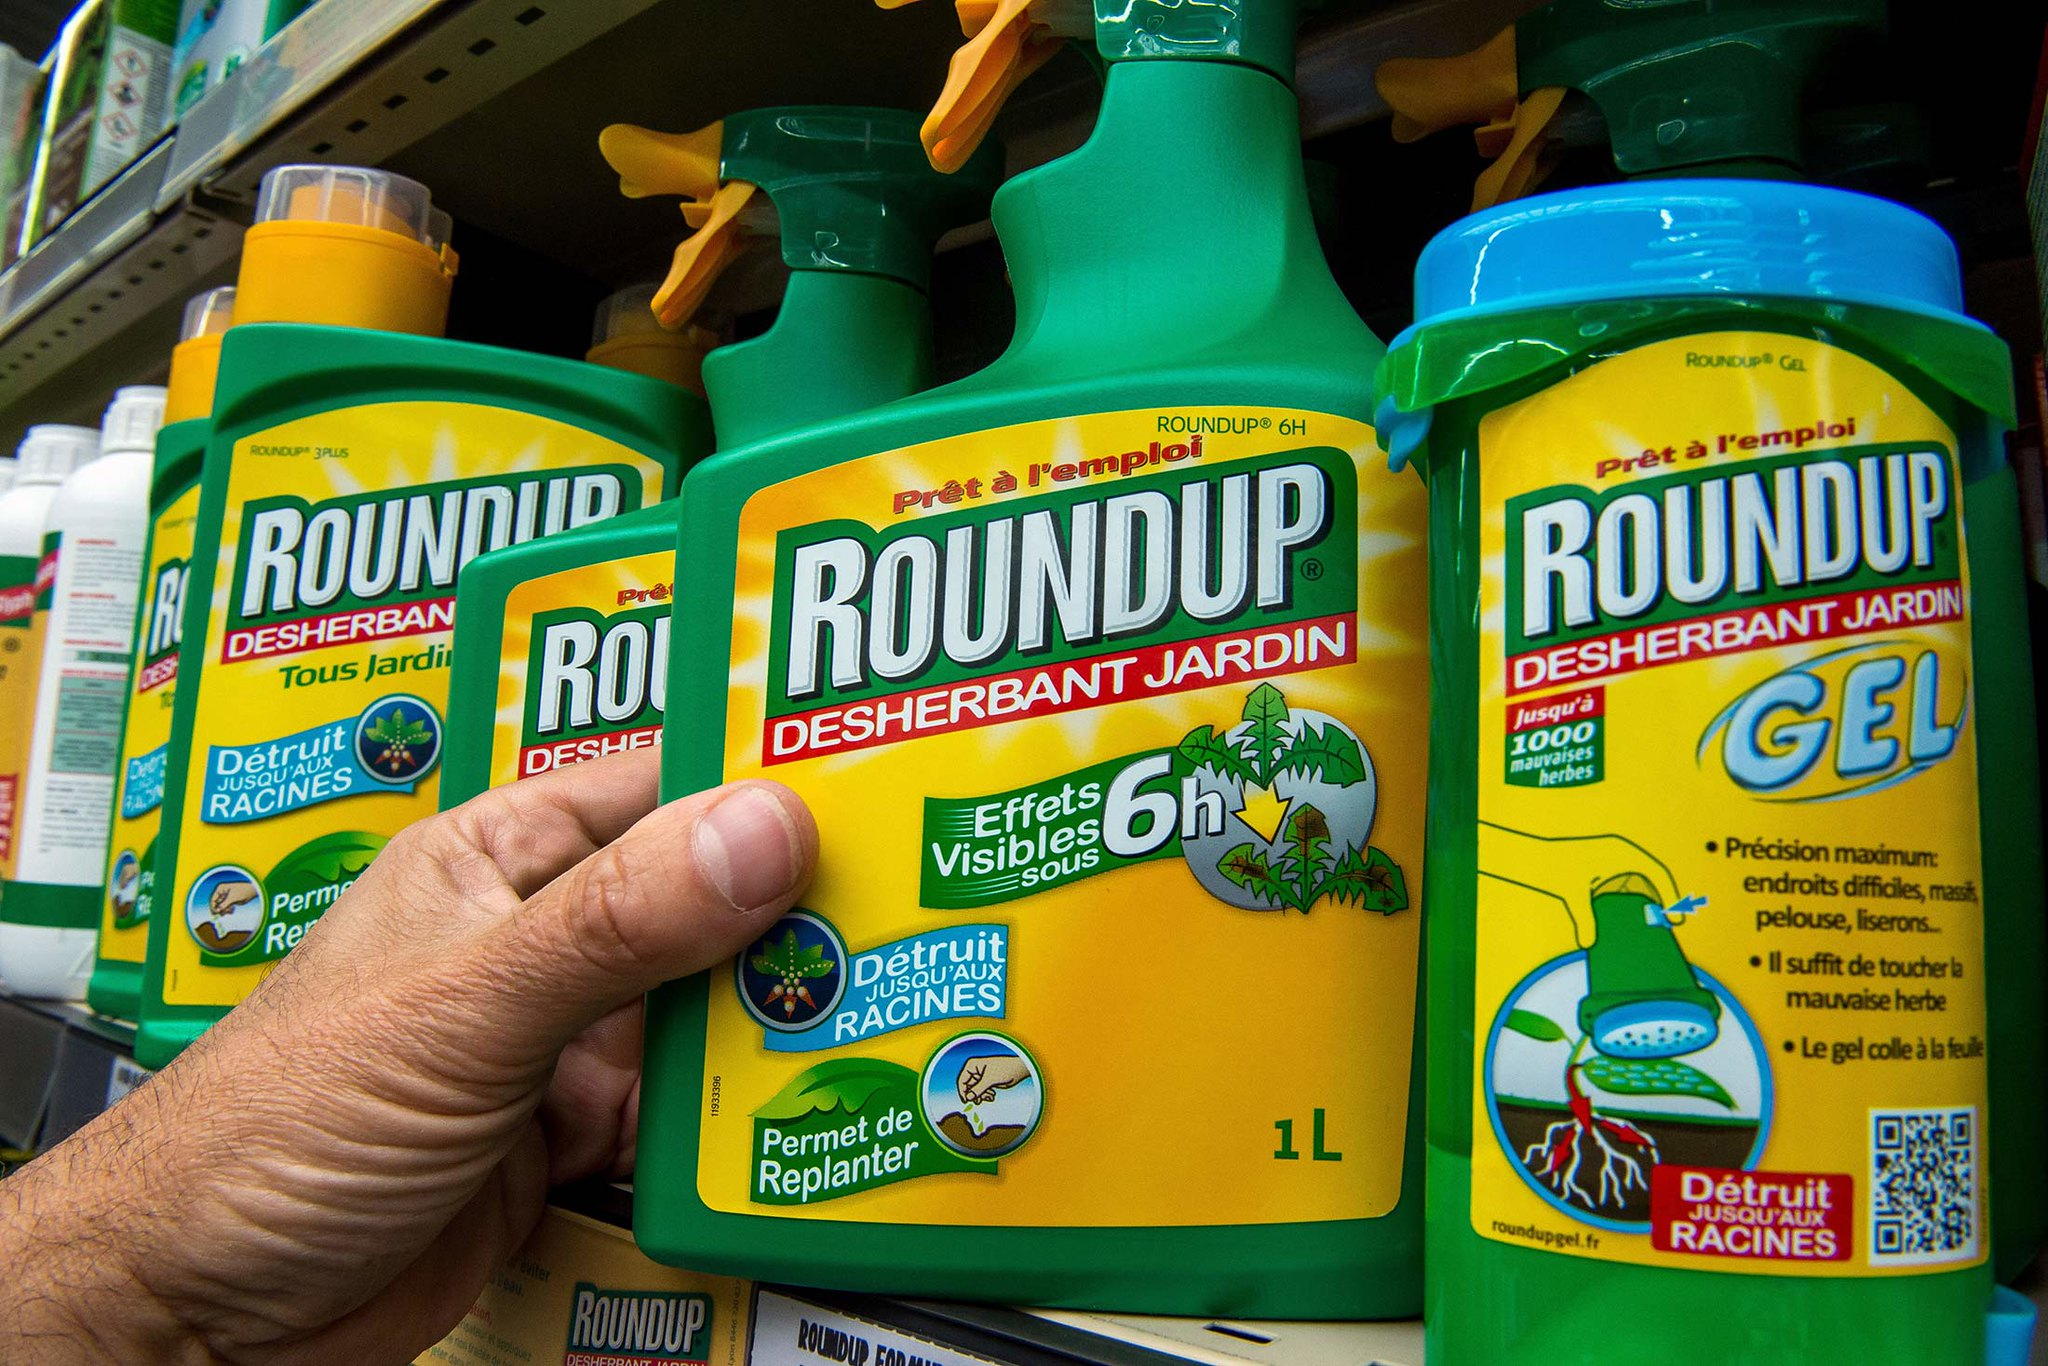 business: It's been a tough year for glyphosate, the world's most popular weedkiller https://t.co/Mqo5LasmeR https://t.co/hfVMroXBN8